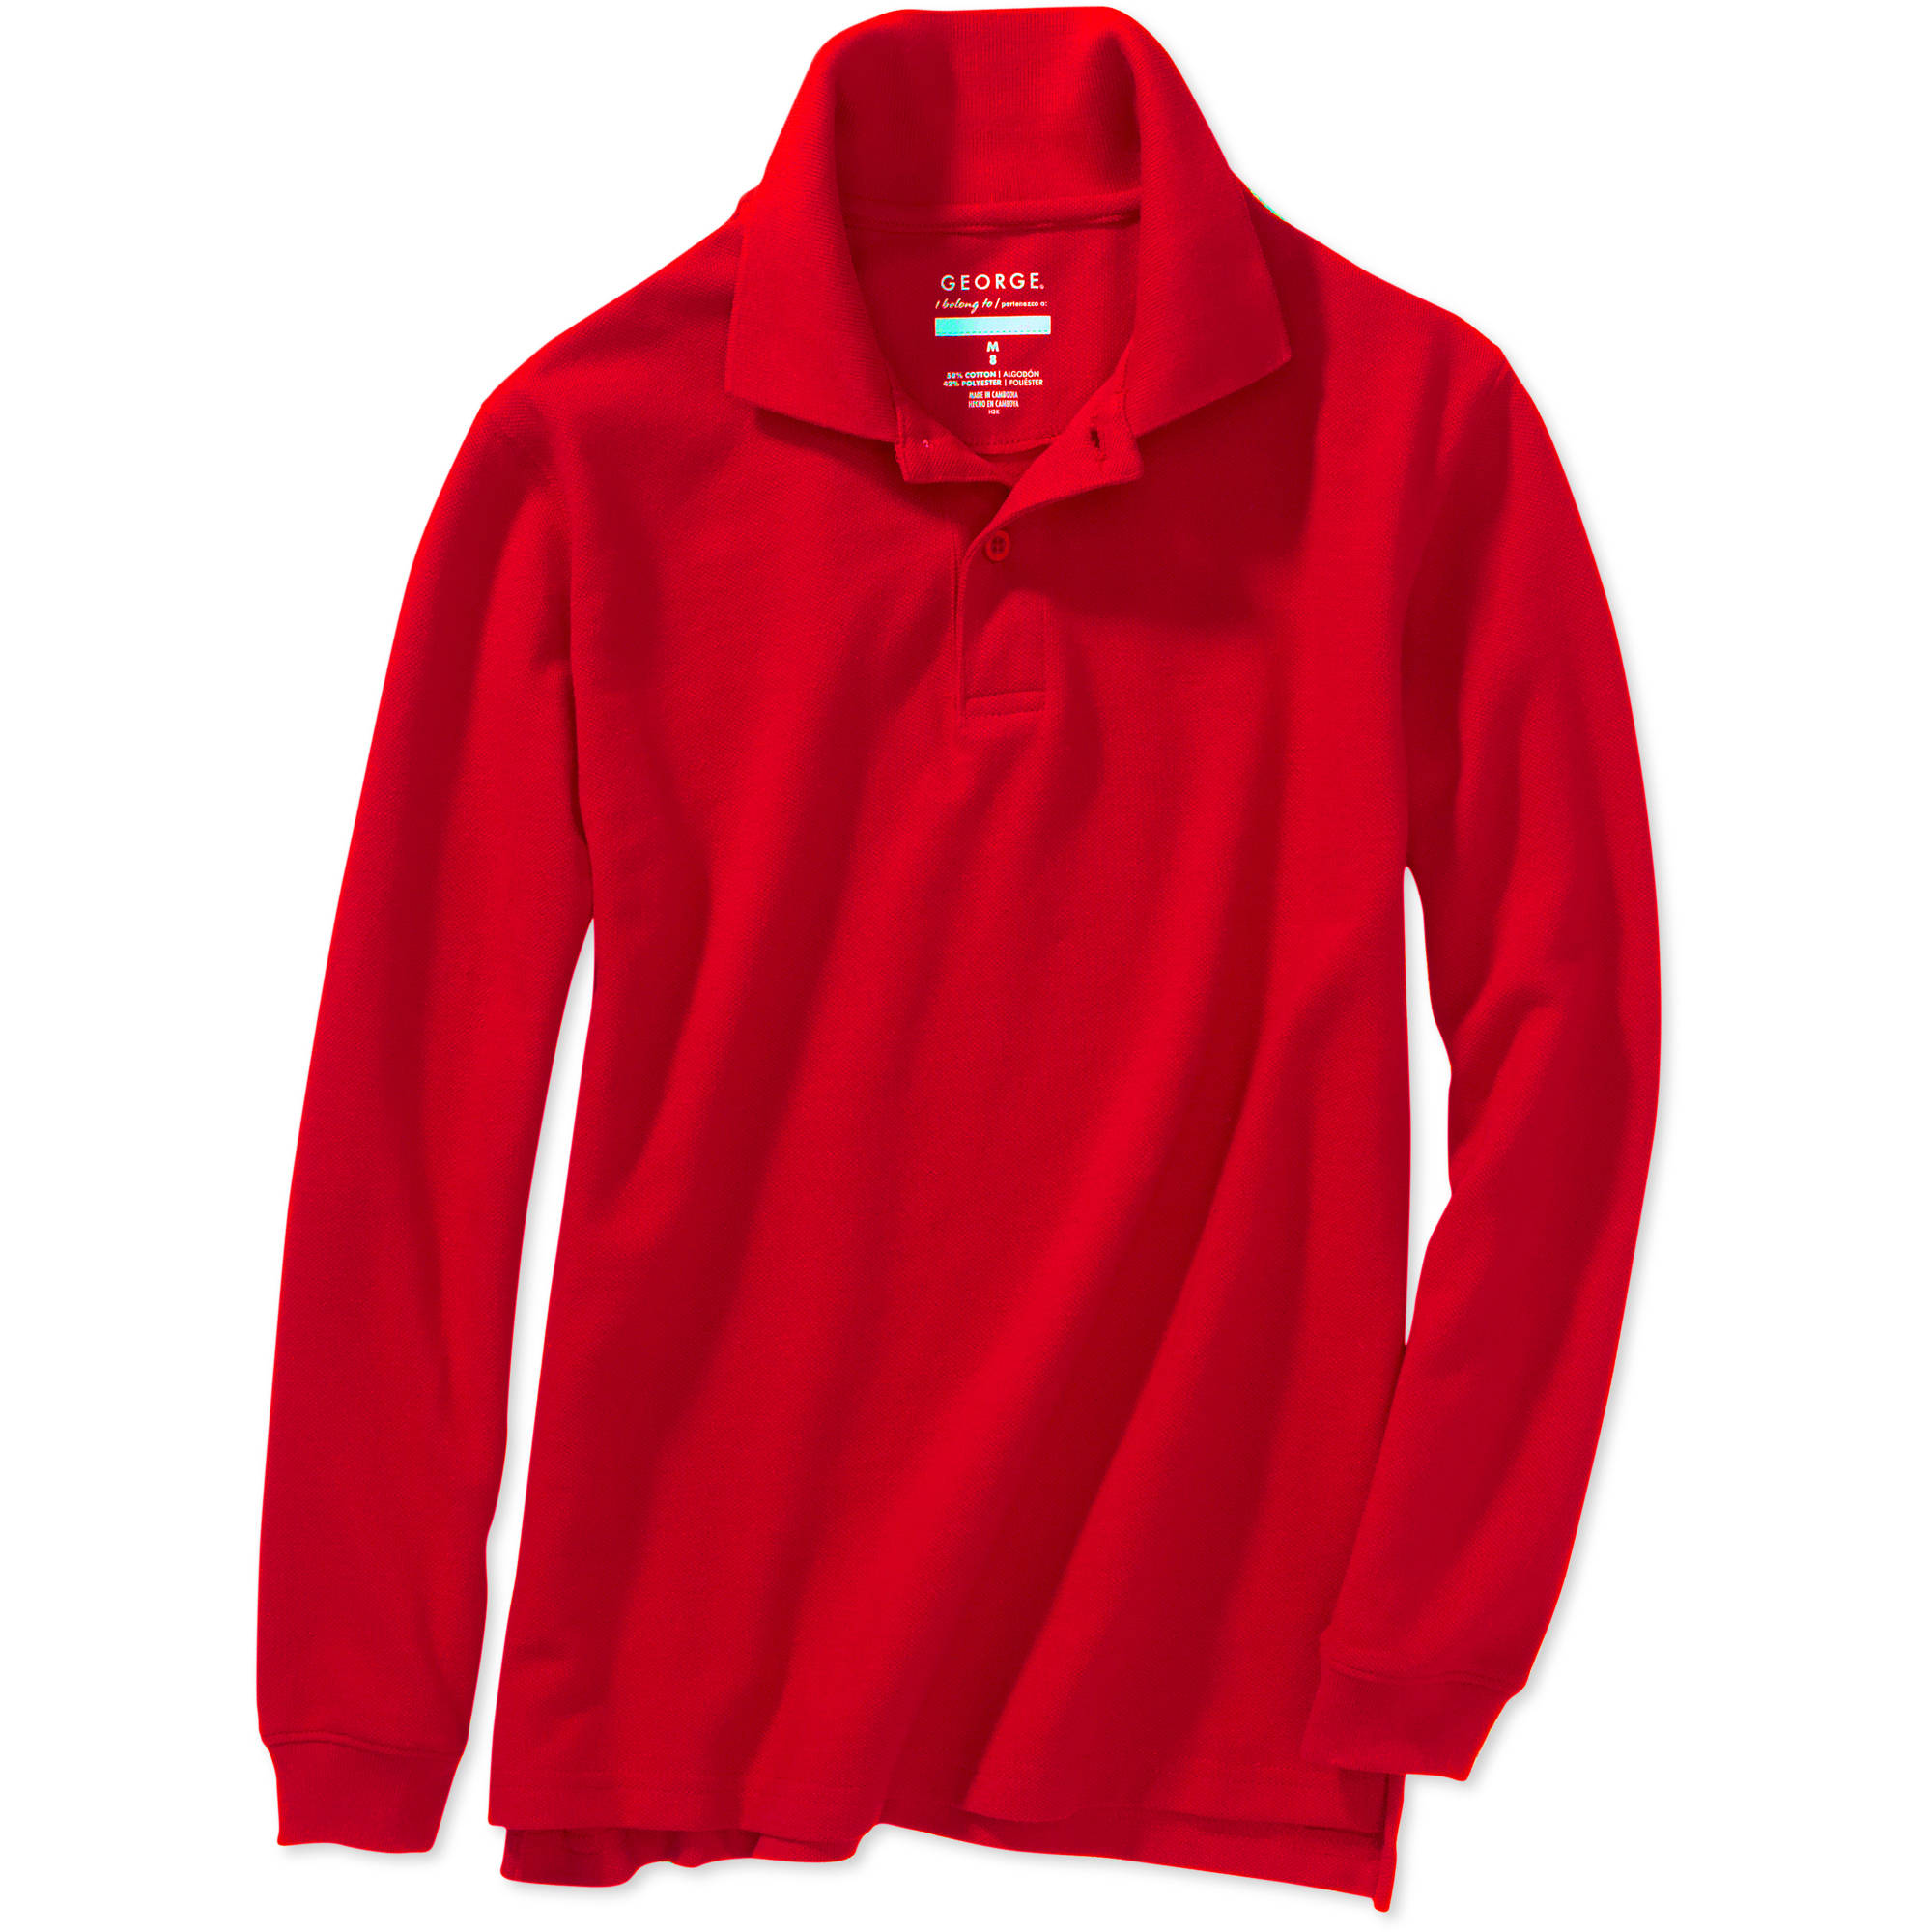 George Boys School Uniforms Long Sleeve Pique Polo Shirt